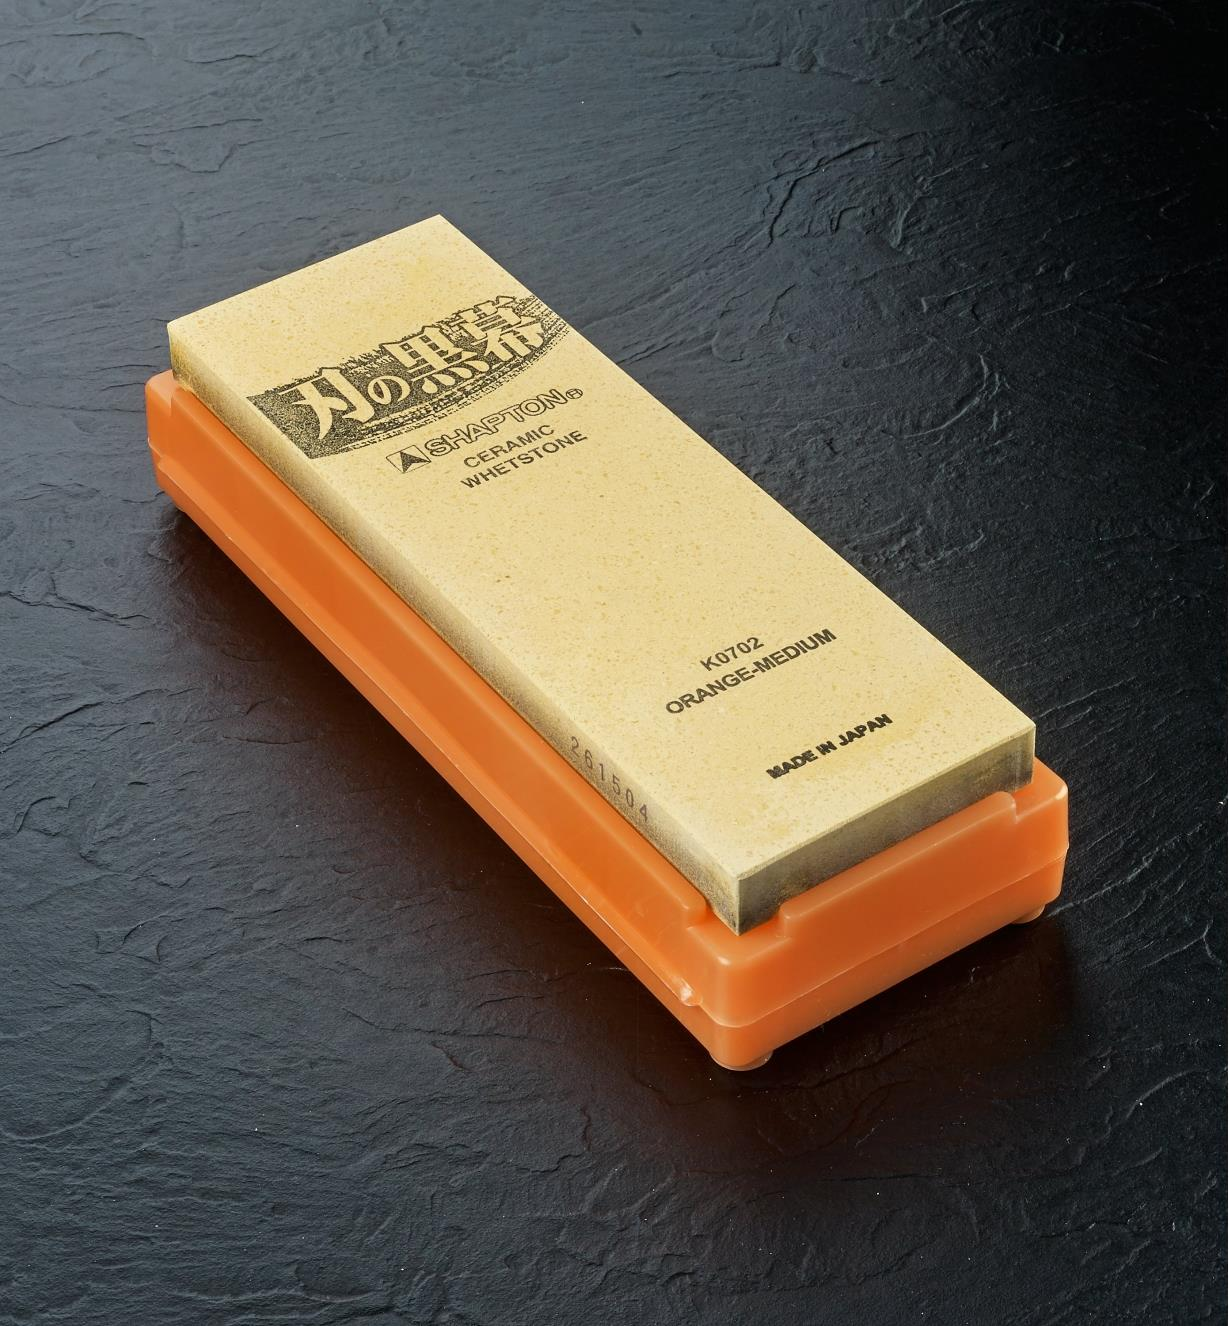 61M0104 - Shapton 1000x Orange Ha-No-Kuromaku Ceramic Stone